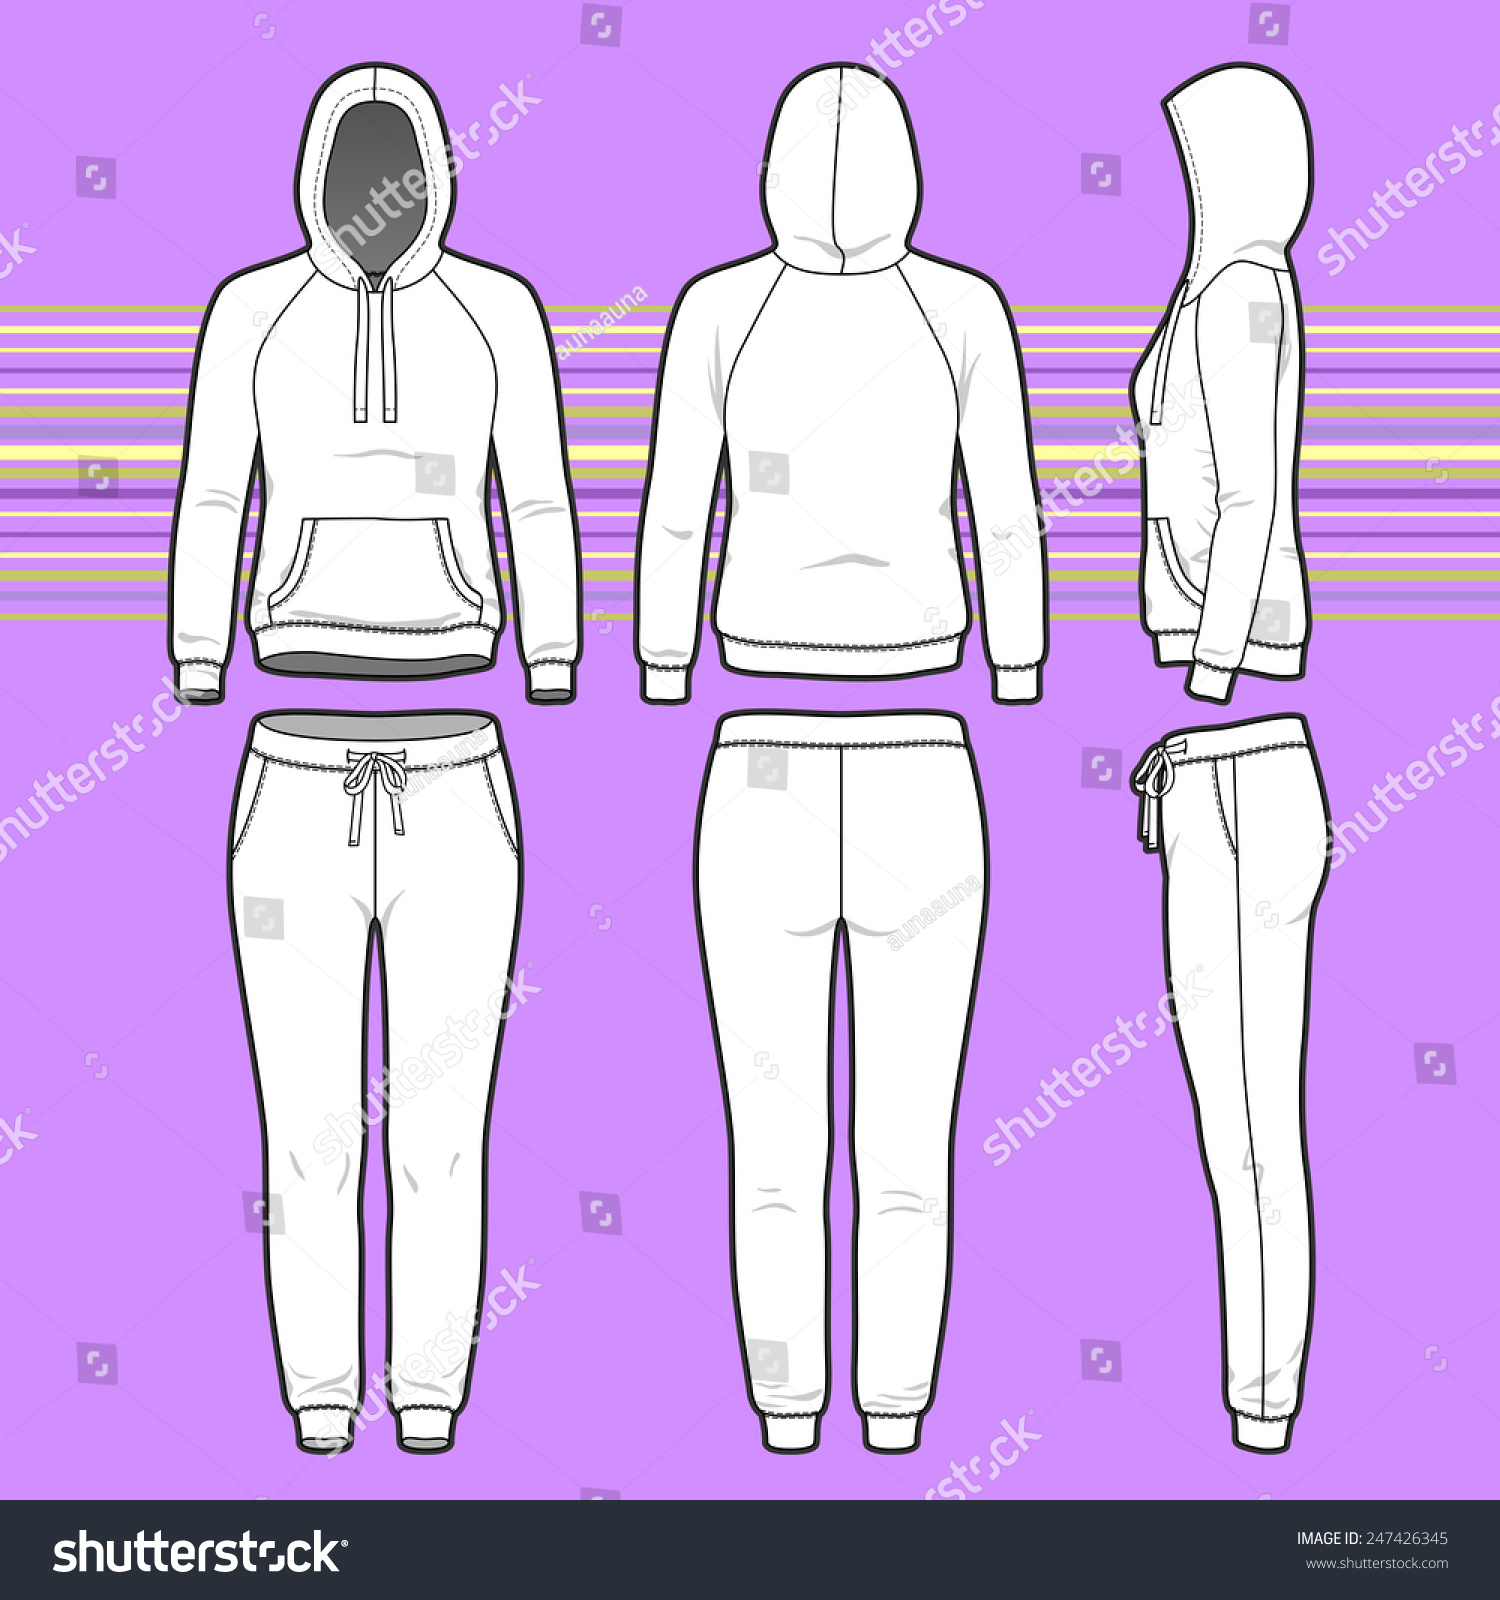 Front Back Side Views Womens Clothing Stock Vector Royalty Free 247426345